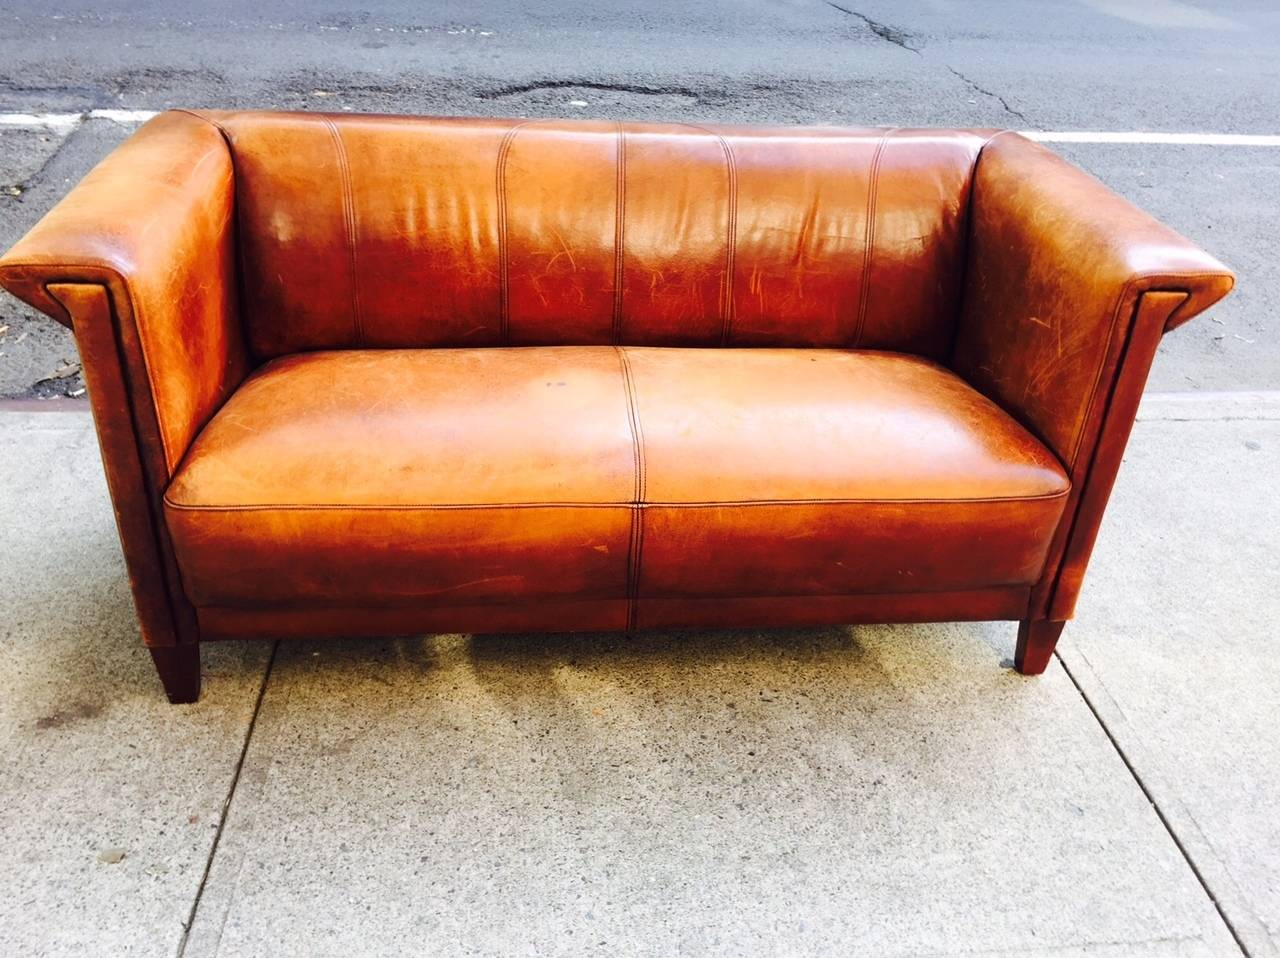 Leather Couch Restoration Vintage Italian Distressed Leather Sofa At 1stdibs